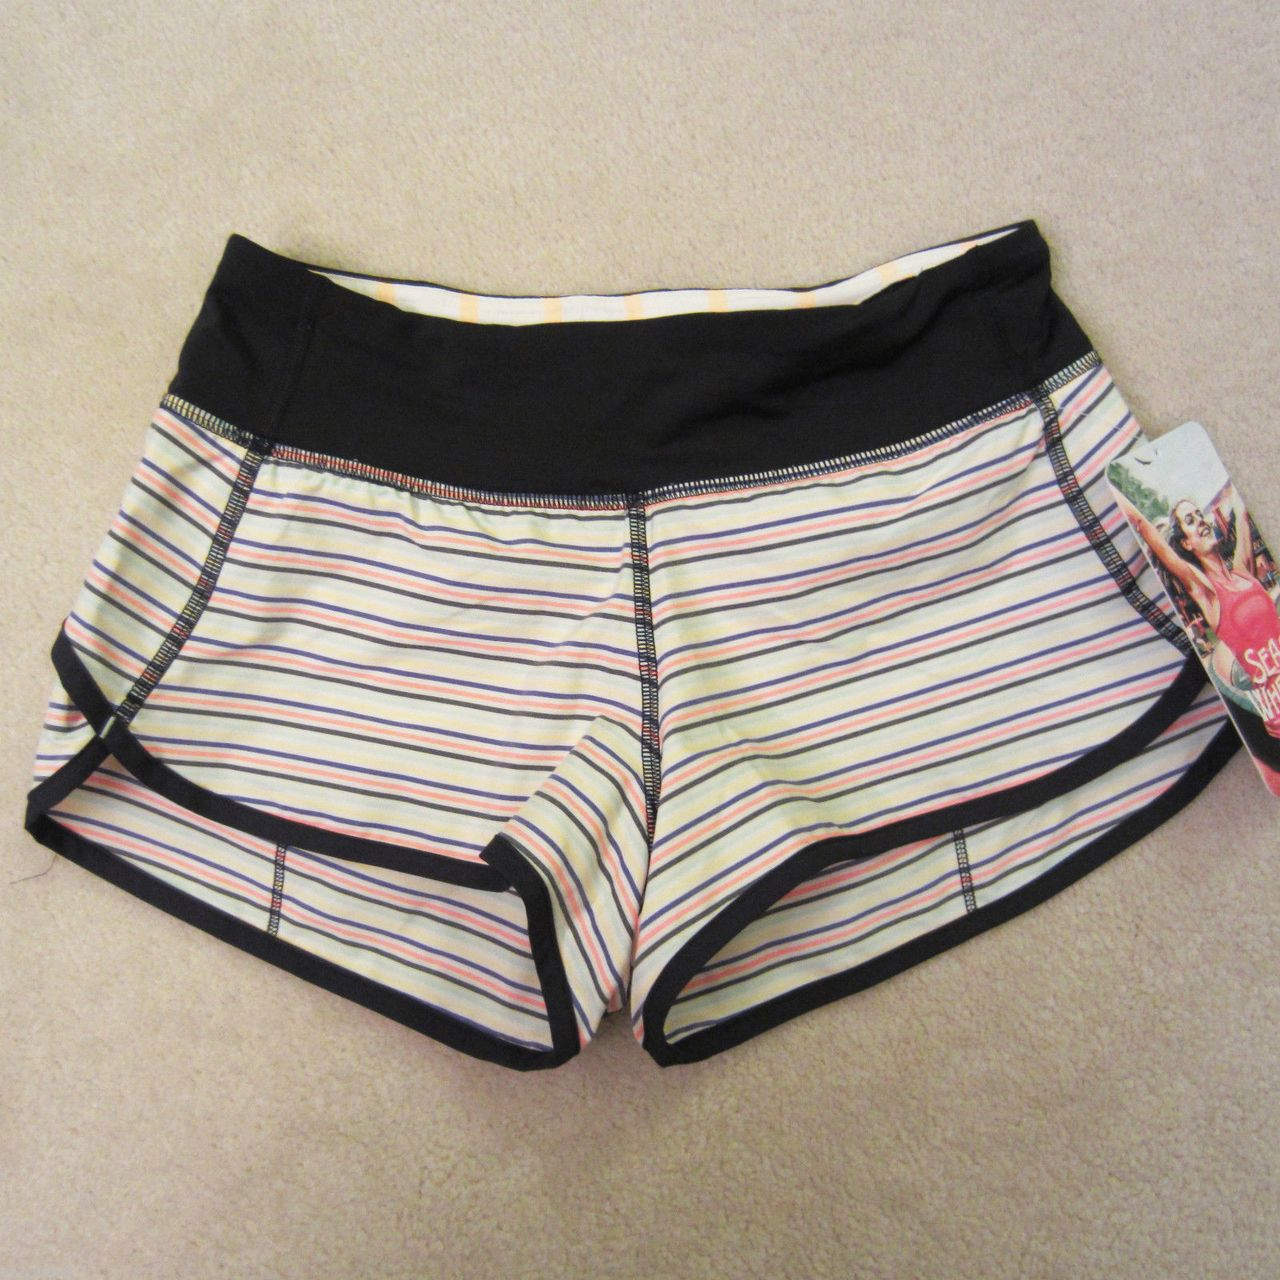 Lululemon Speed Short - 2013 Seawheeze - Mountie Stripe